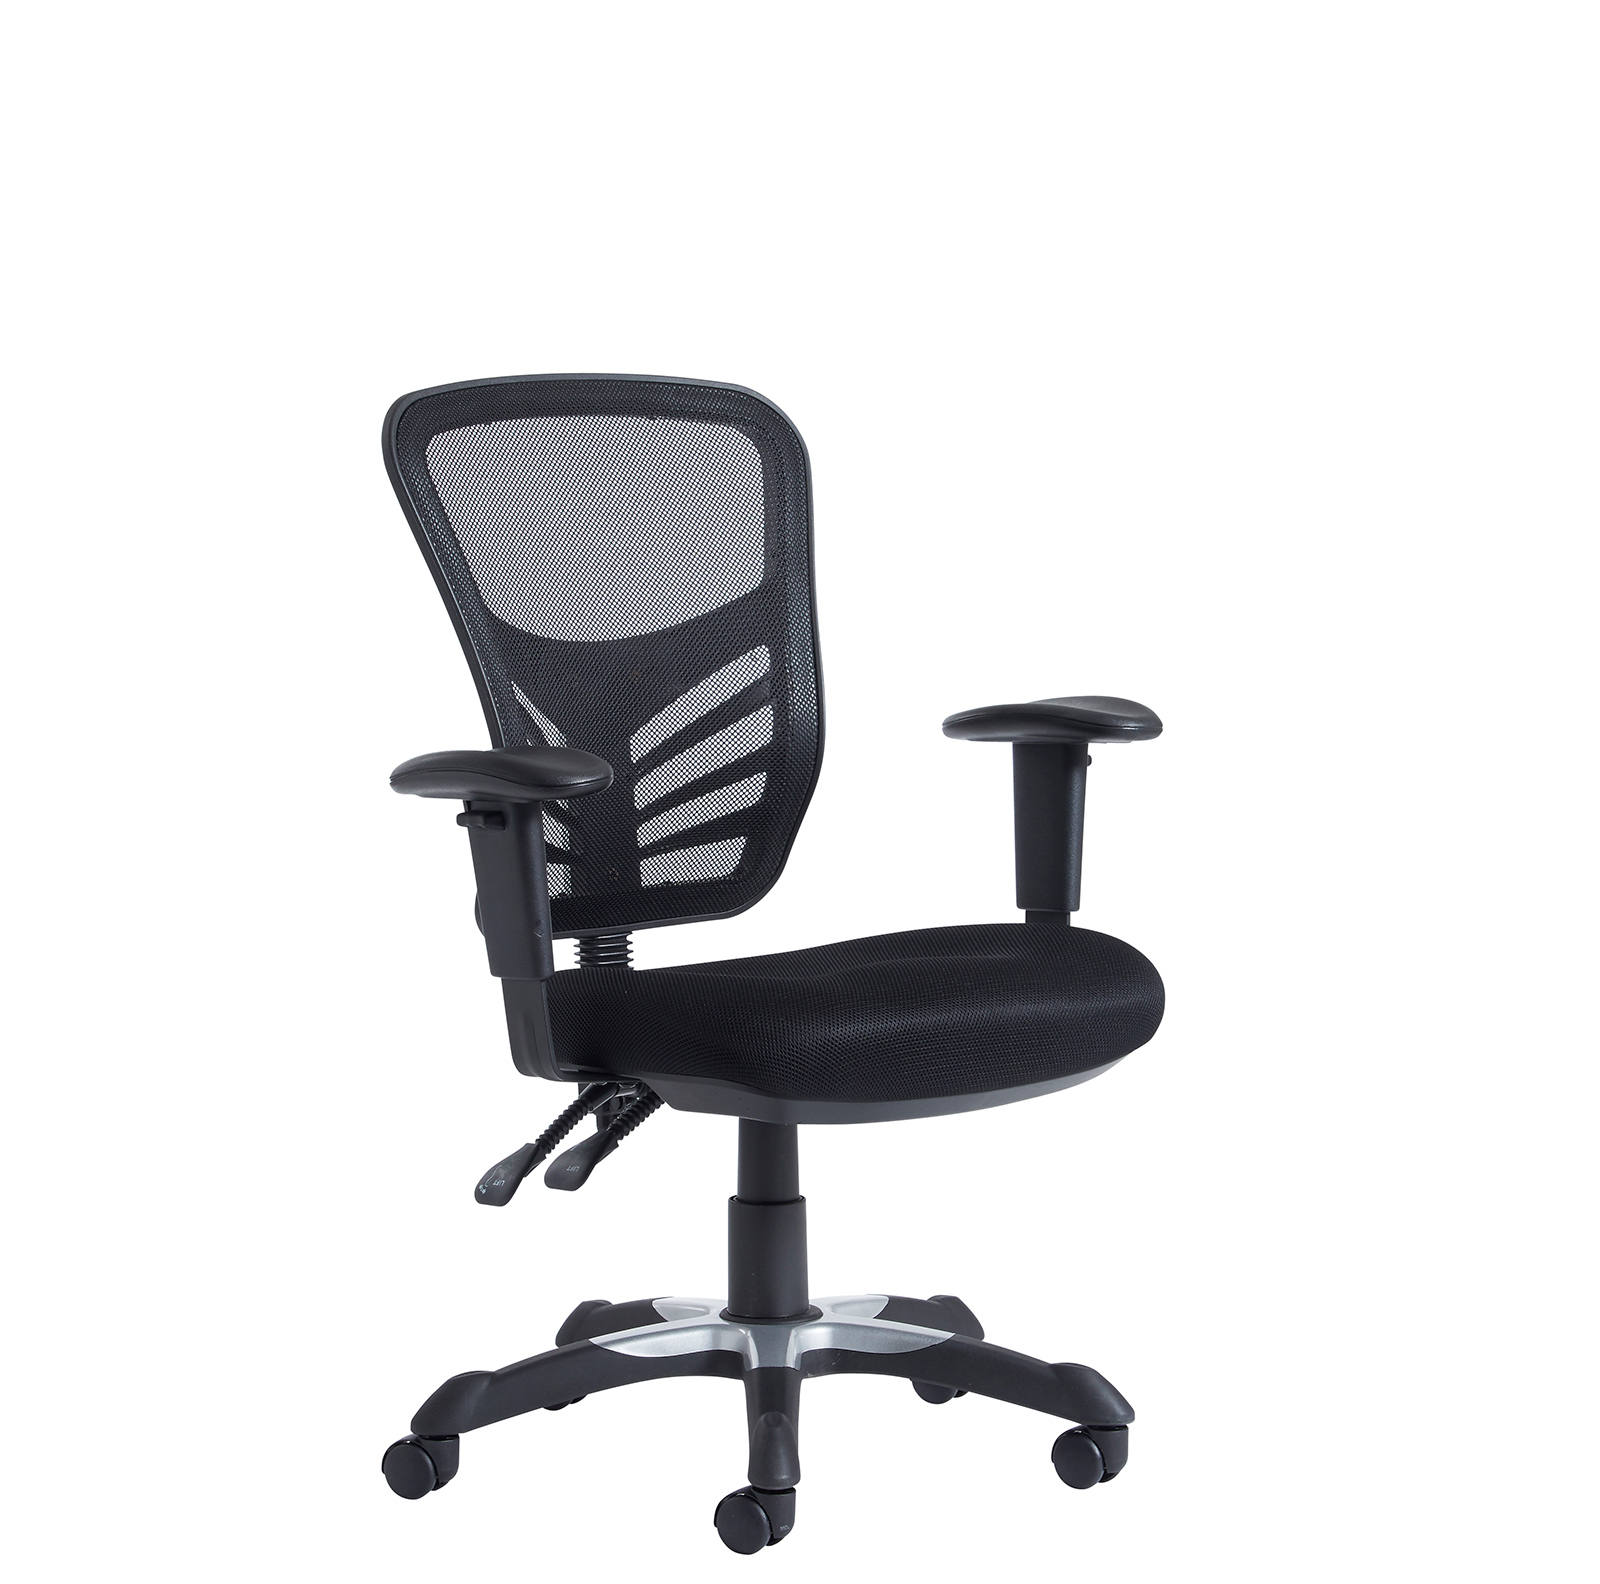 best office chair after spinal fusion clear plastic covers vantage mesh 2 lever task with adjustable arms